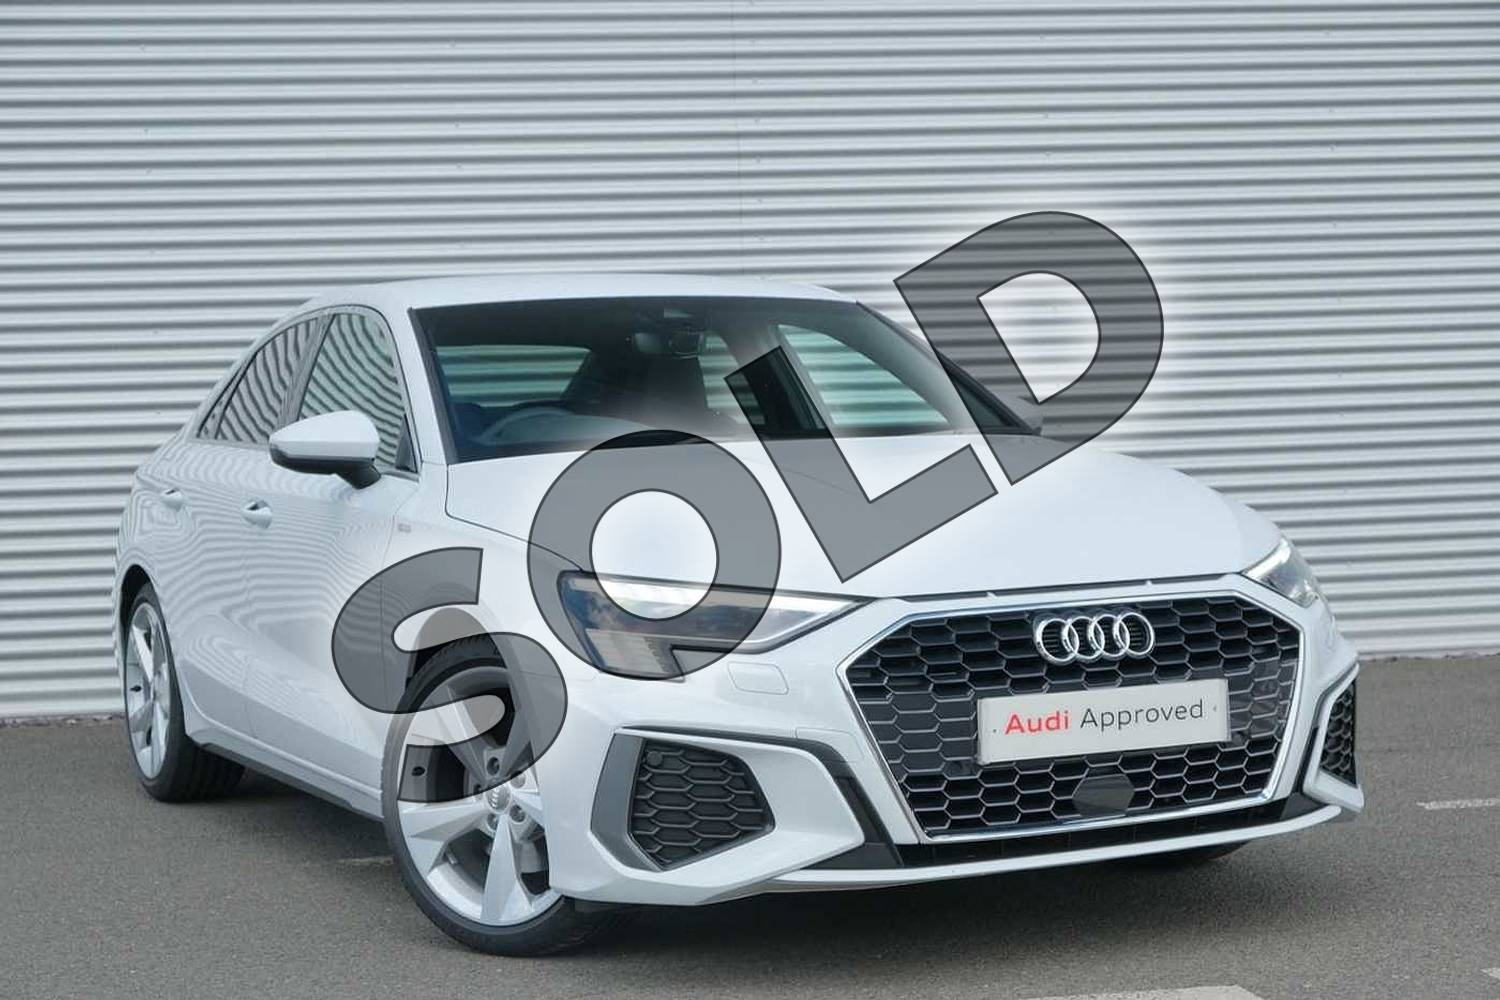 2020 Audi A3 Saloon 35 TFSI S line 4dr in Glacier White Metallic at Coventry Audi